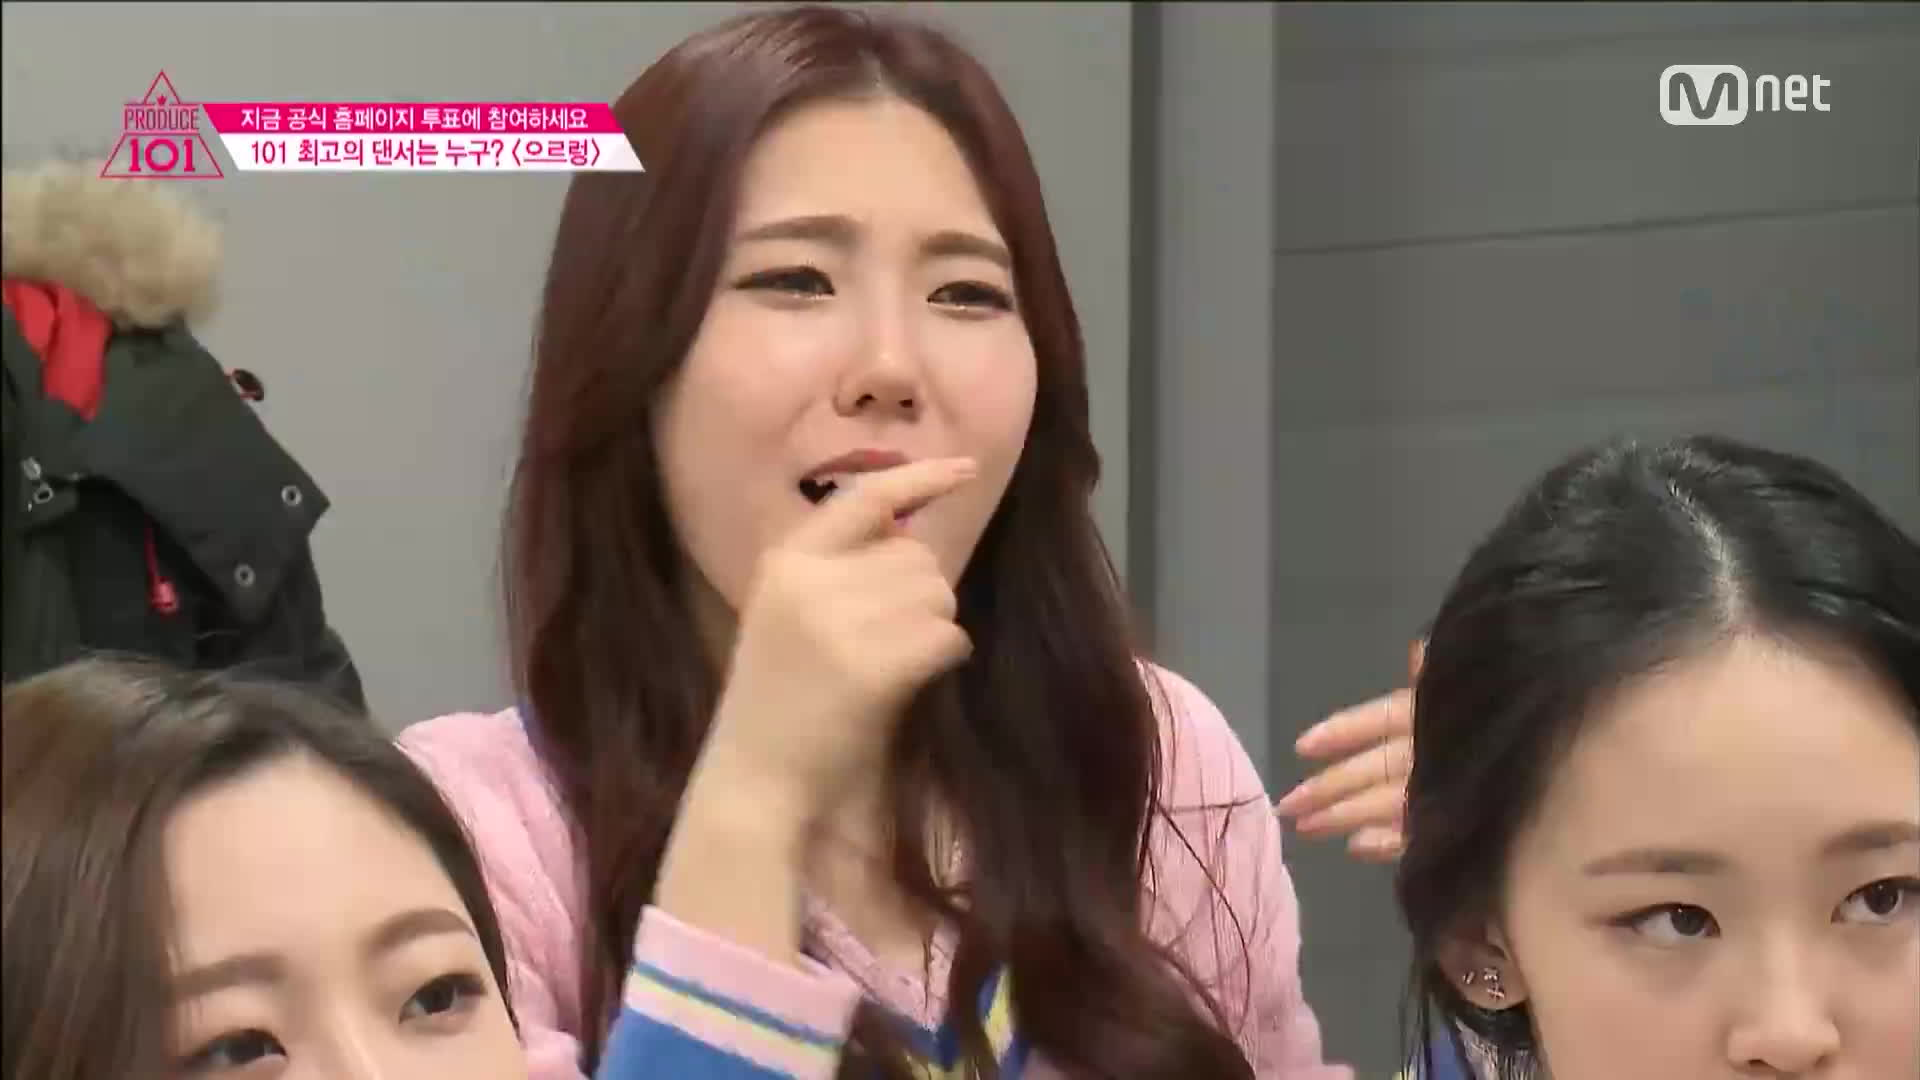 produce101, 오프닝, 프로듀스101, Kang Sira doesn't know what to do GIFs